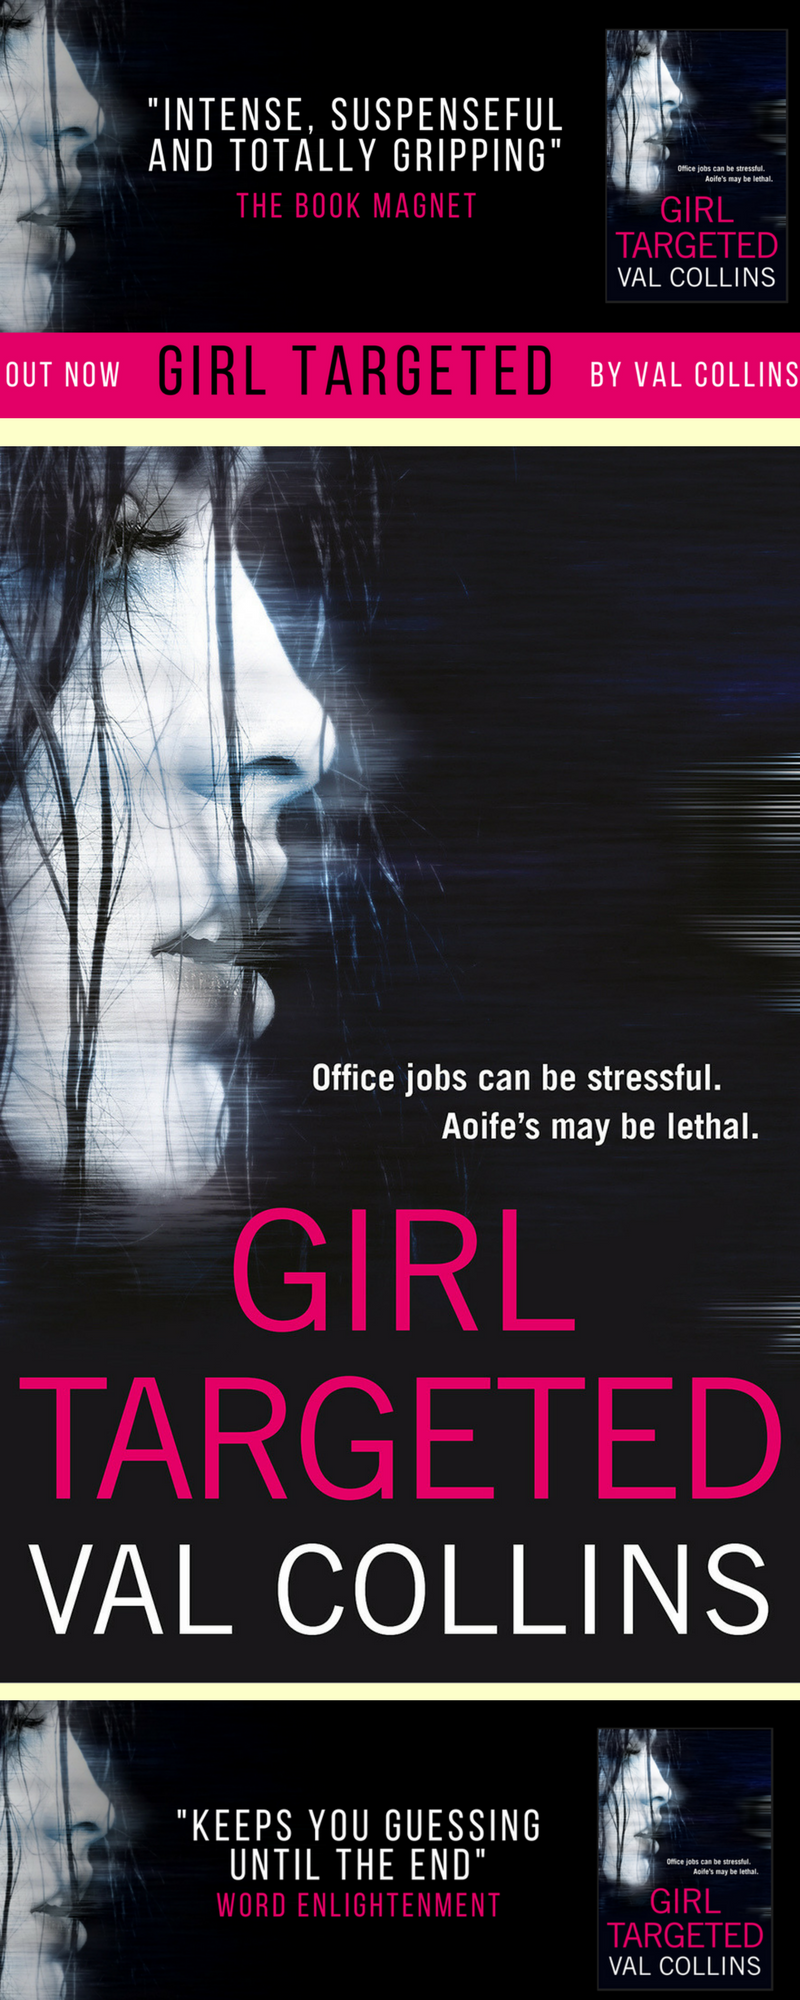 Book reviews for for Girl Targeted, a mystery suspense thriller set in  Ireland. Aoife's